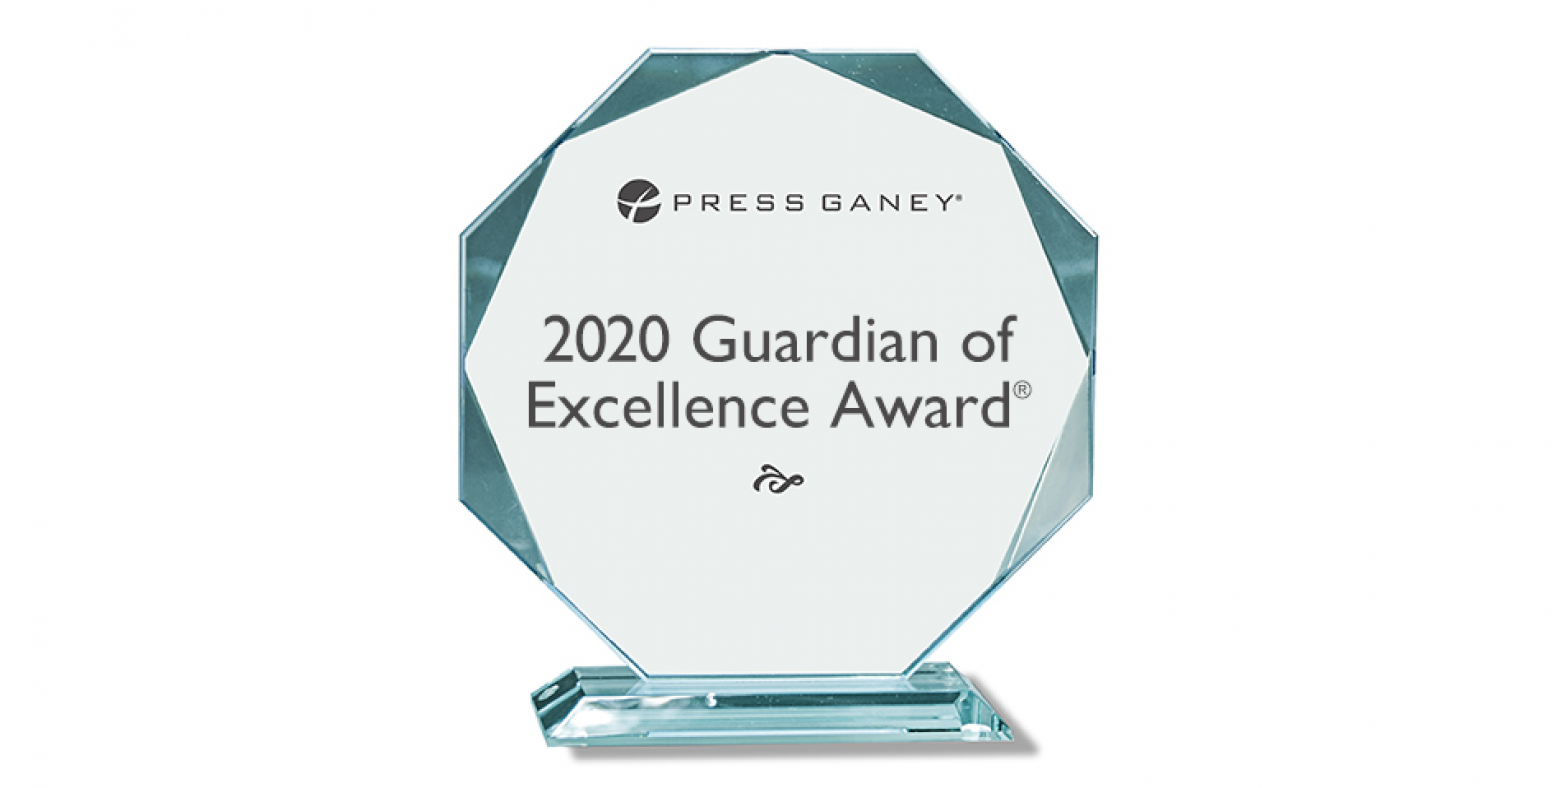 2020 Guardian of Excellence Award